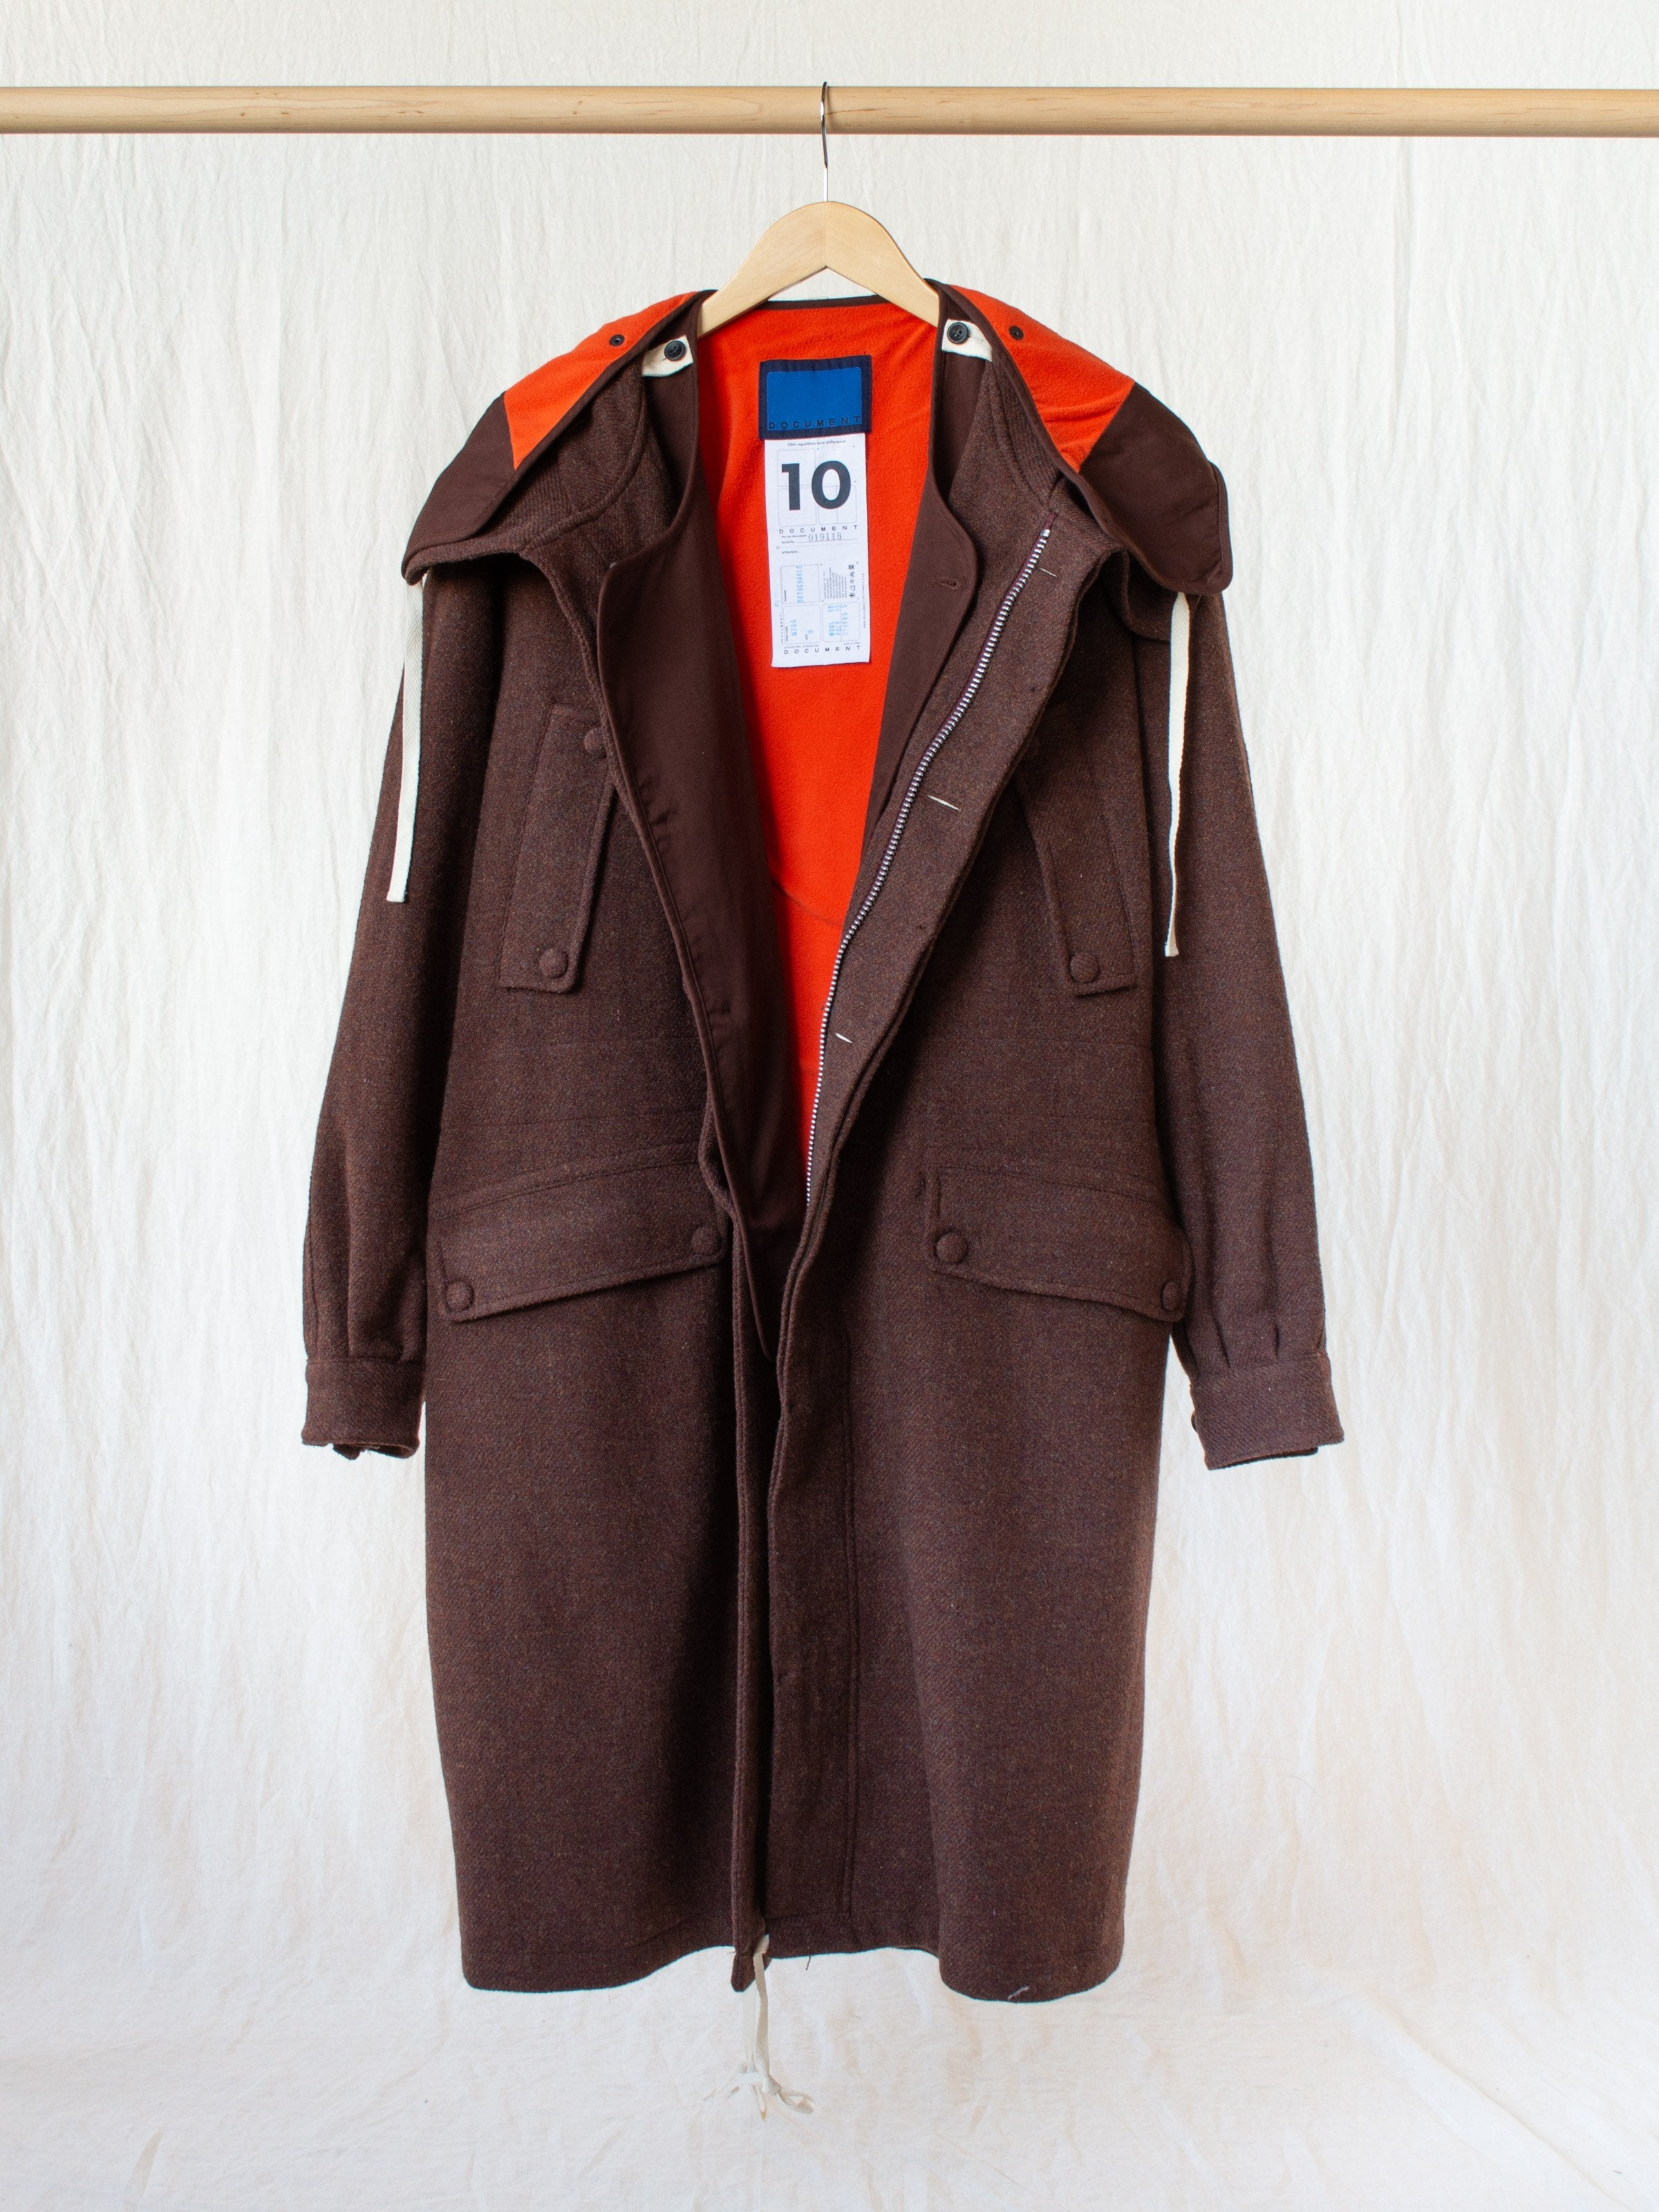 Namu Shop - Document The Document Wool Parka - Brown/Orange